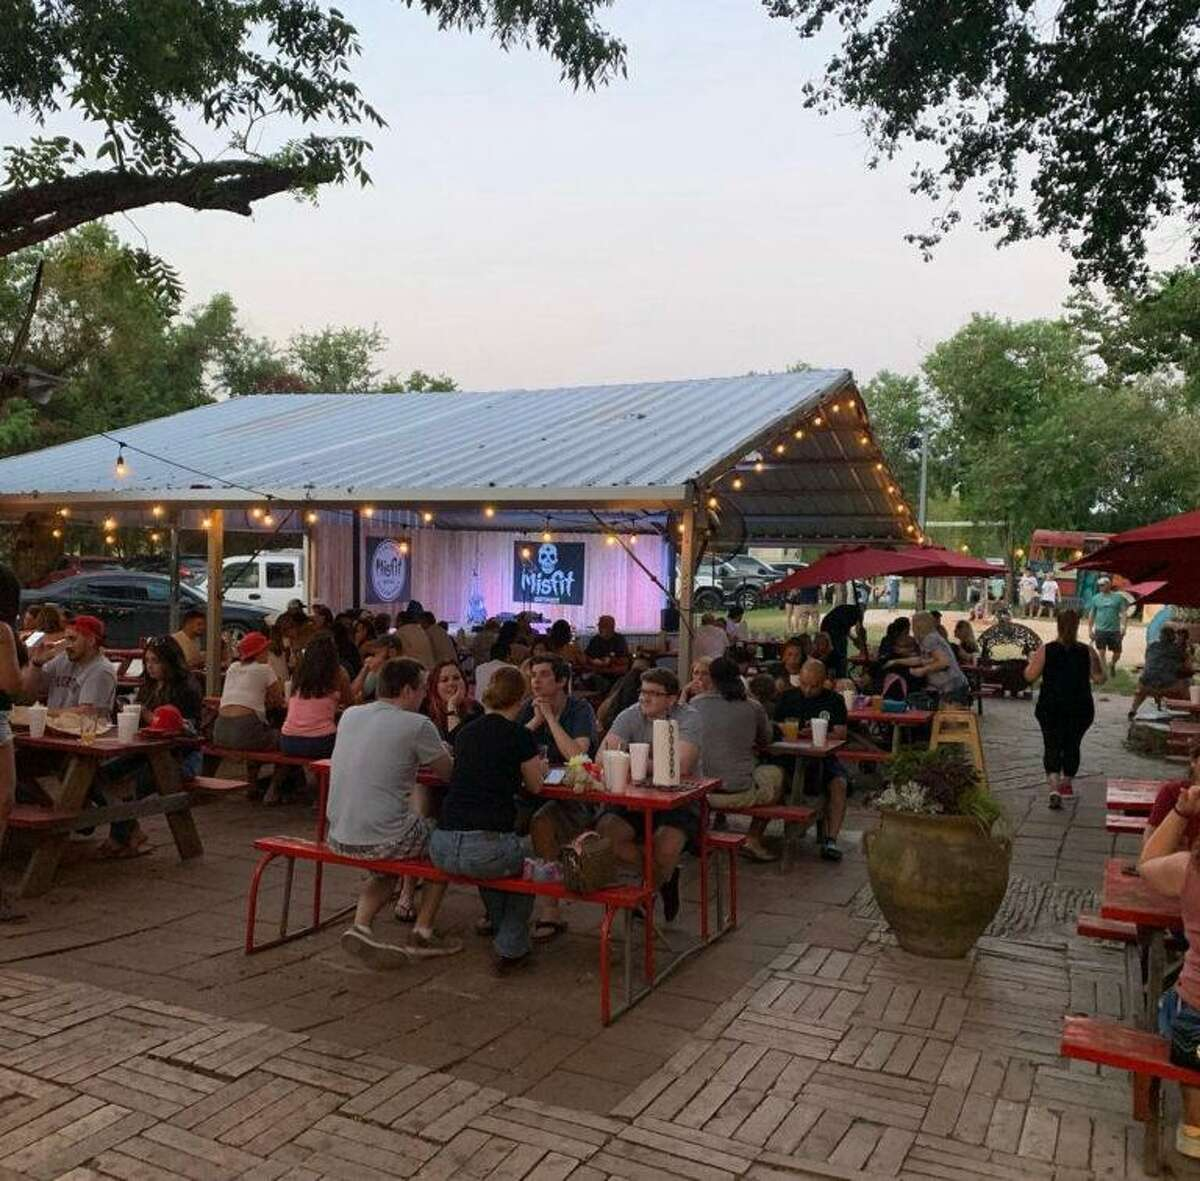 Misfit Outpost, a partnership between Fortress BeerWorks and Misfit Brewing, opened at 16602 Cypress Rosehill Road in Cypress. The site was previously occupied by the Shack Burger Resort.